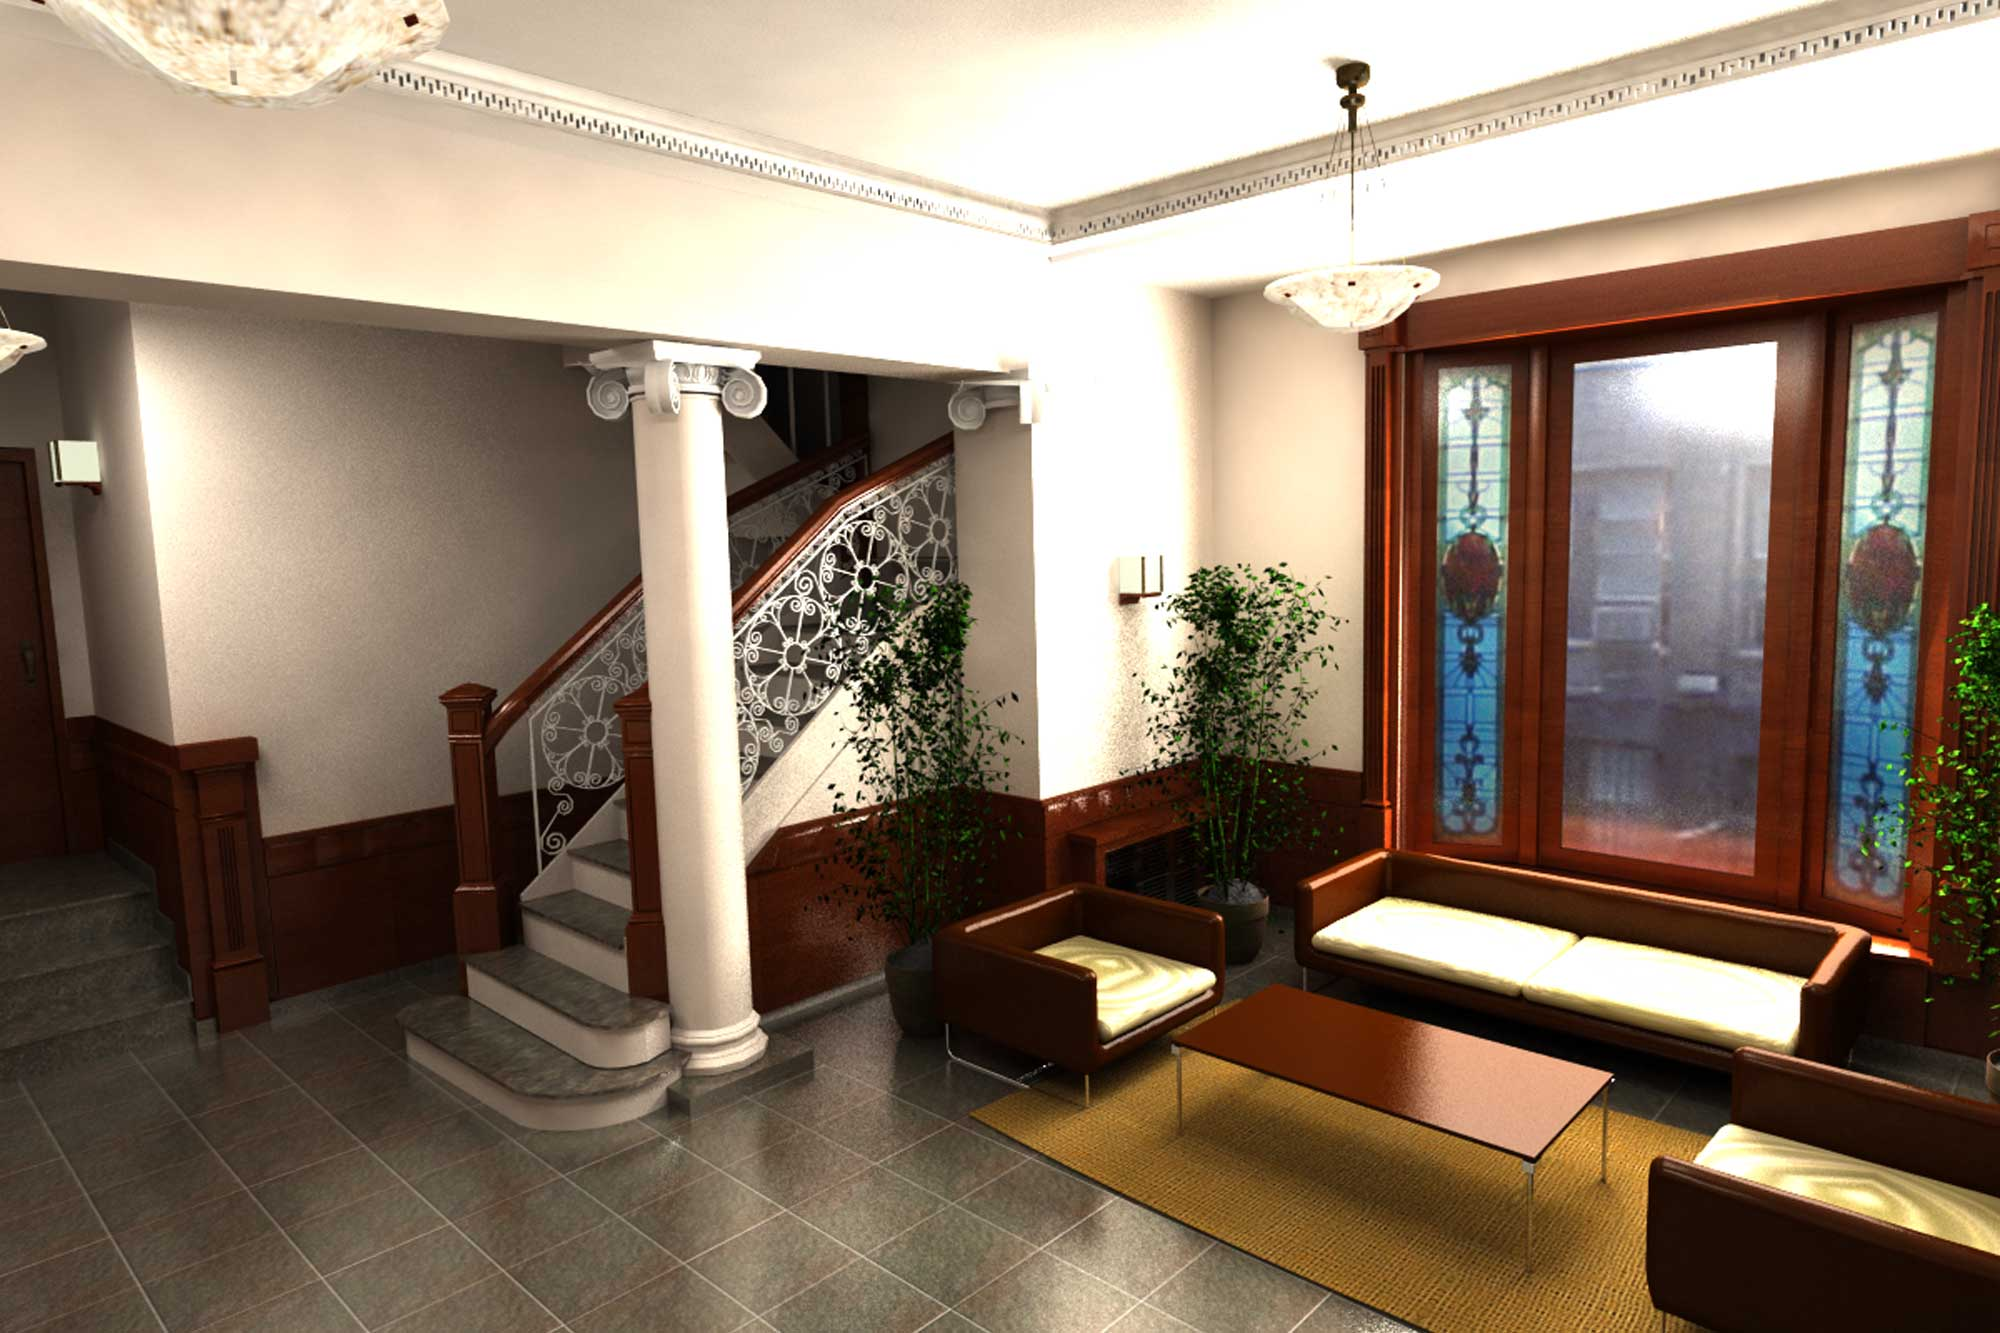 Architectural Rendering Interior River Hall Dormitory